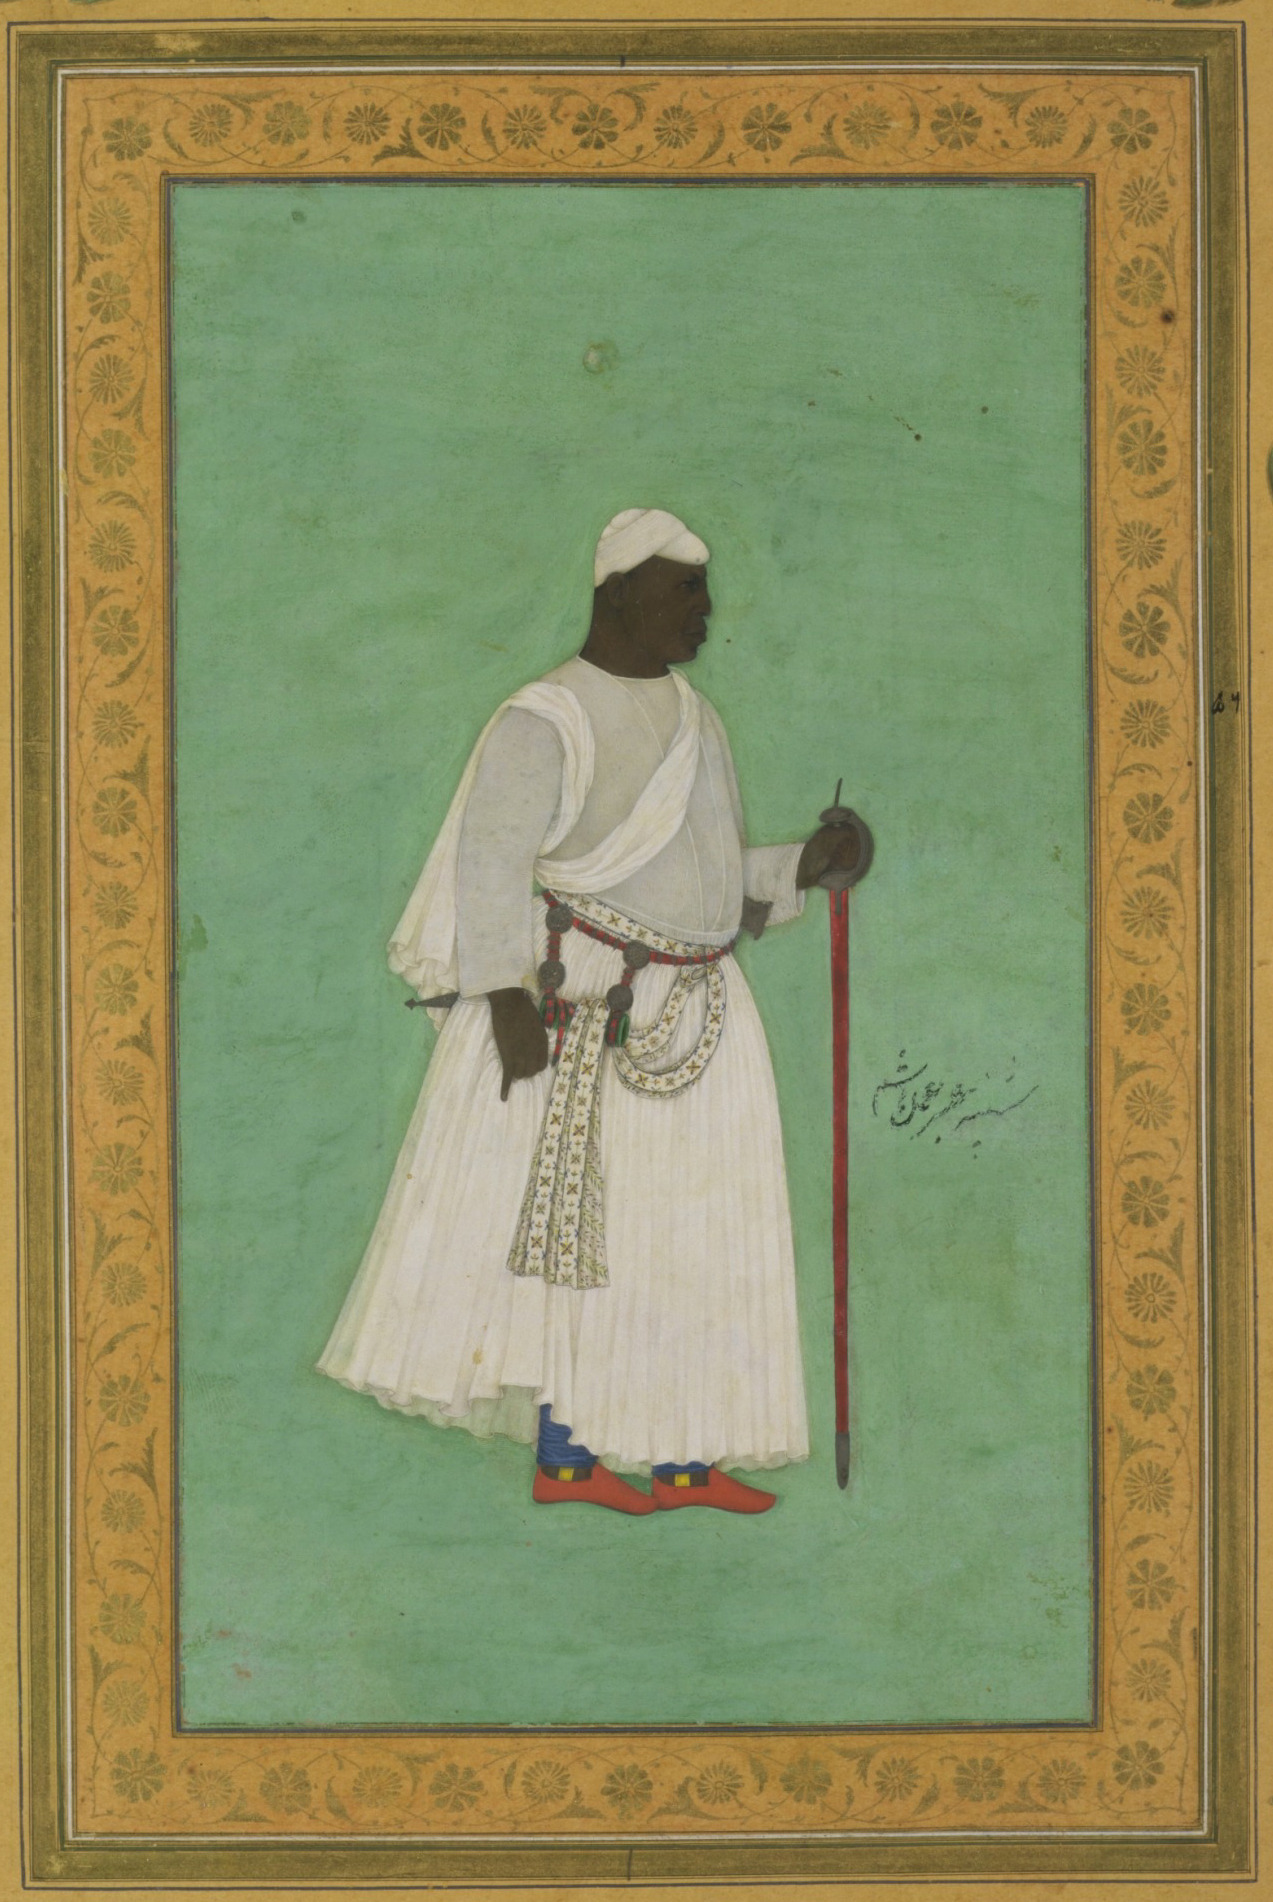 Malik Ambar was born in Ethopia in 1548 with the name Chapu and was sold into slavery. He was eventually bought by a leading member of the Nizam Shahi court of Ahmadnagar, one of the fragile sultanates of the Deccan. The slave became a soldier, and eventually a commander of the Nizam Shahi army, leading it against the Mughal army of the emperor Akbar. By 1600 he had become Regent of the Kingdom, effectively ruling Ahmadnagar until his death in 1626. His army scored significant victories against the Mughals during the reign of Jahangir. The Mughal army was led by Jahangir's son, Shah Jahan, who rebelled against his father in 1624 and sought support from his former enemy. It is likely that Hashim was sent with Shah Jahan's envoy and painted this naturalistic portrait after seeing the subject at first hand.